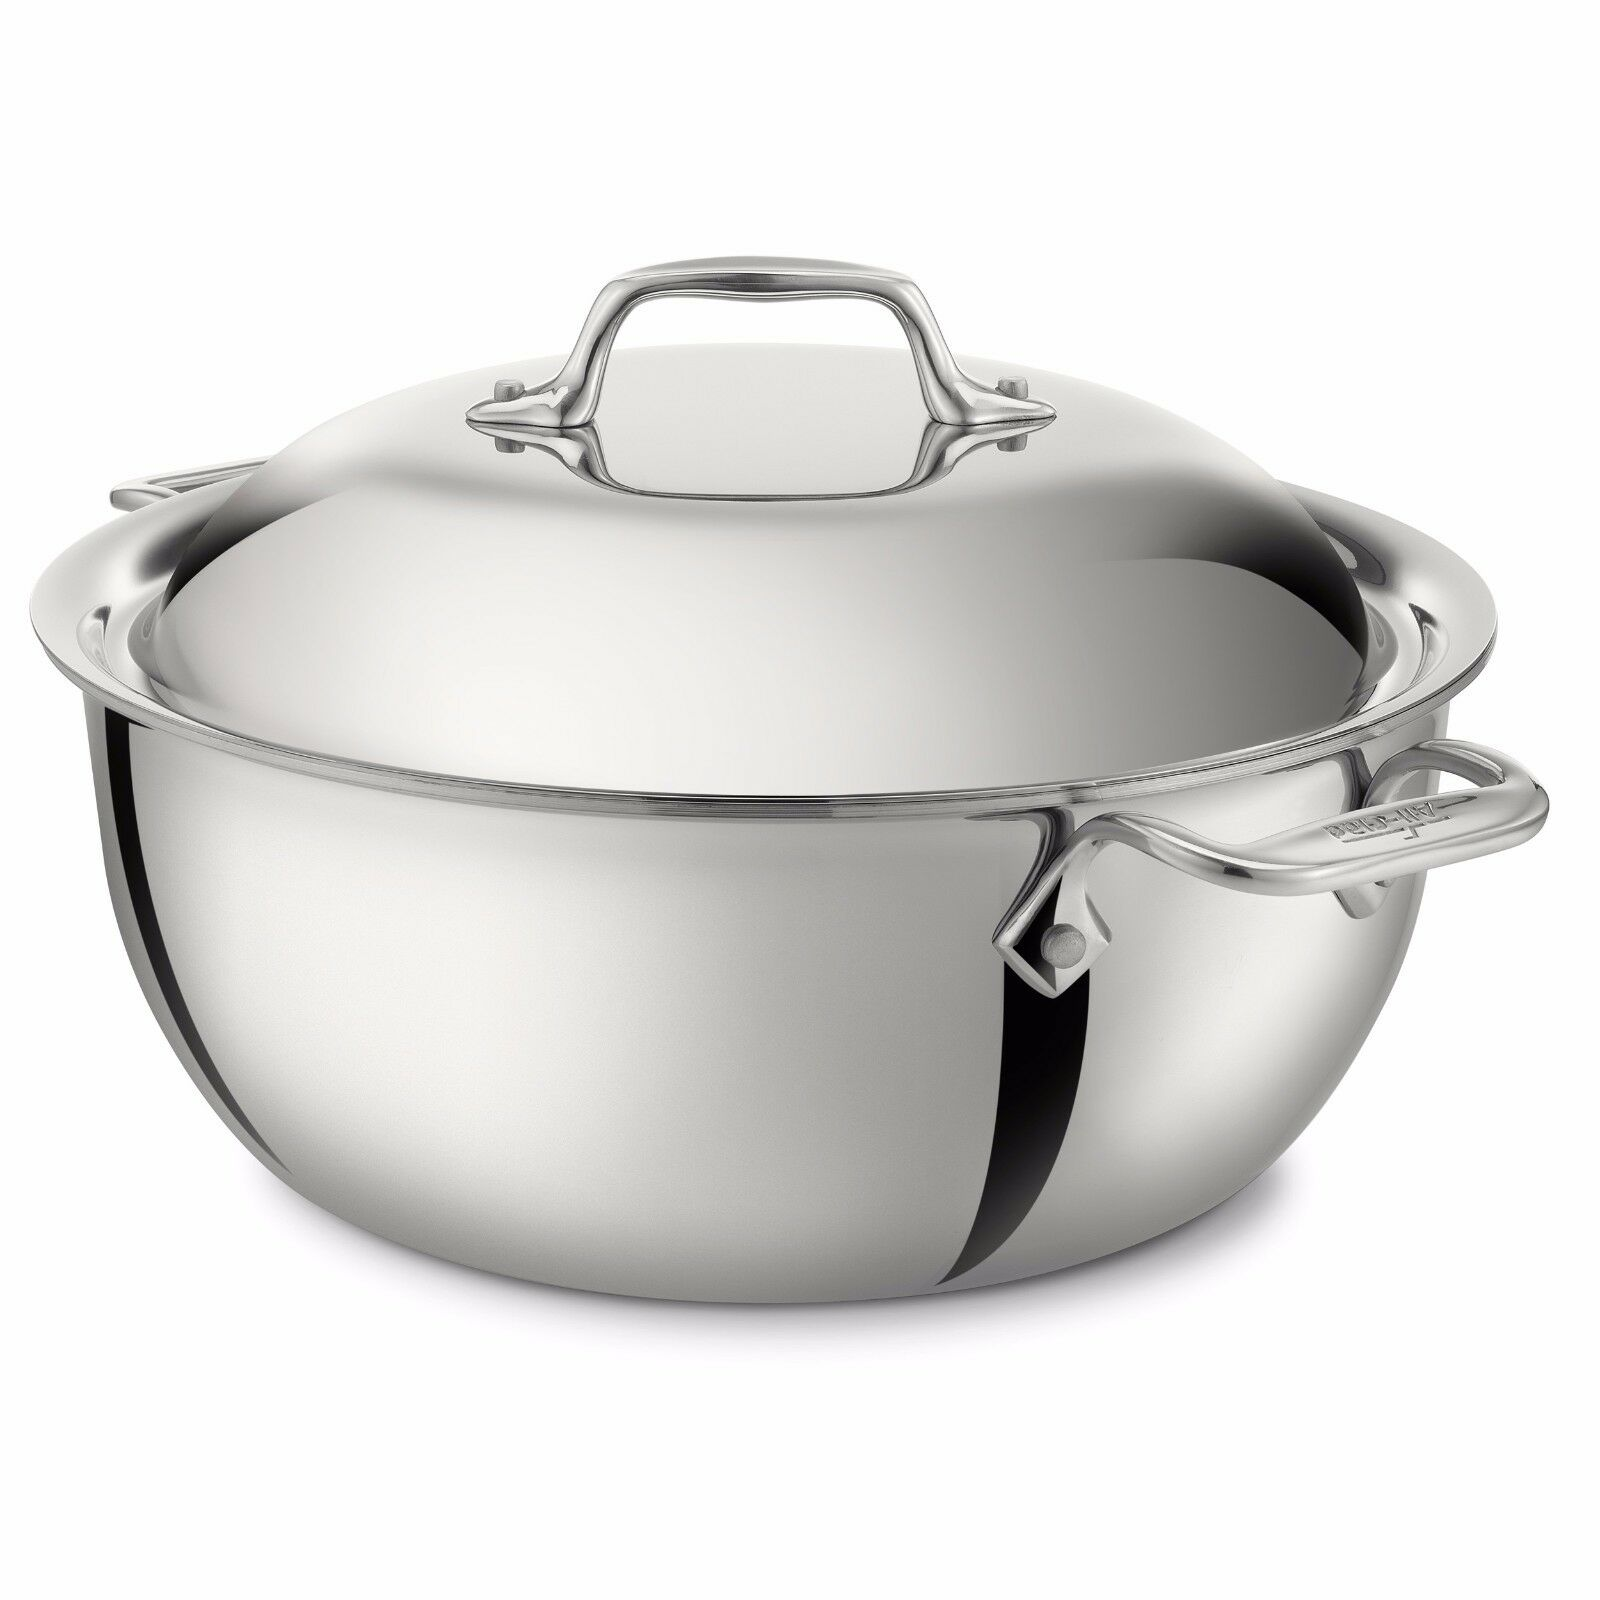 All-Clad Stainless Steel 5.5 Qt Dutch Oven